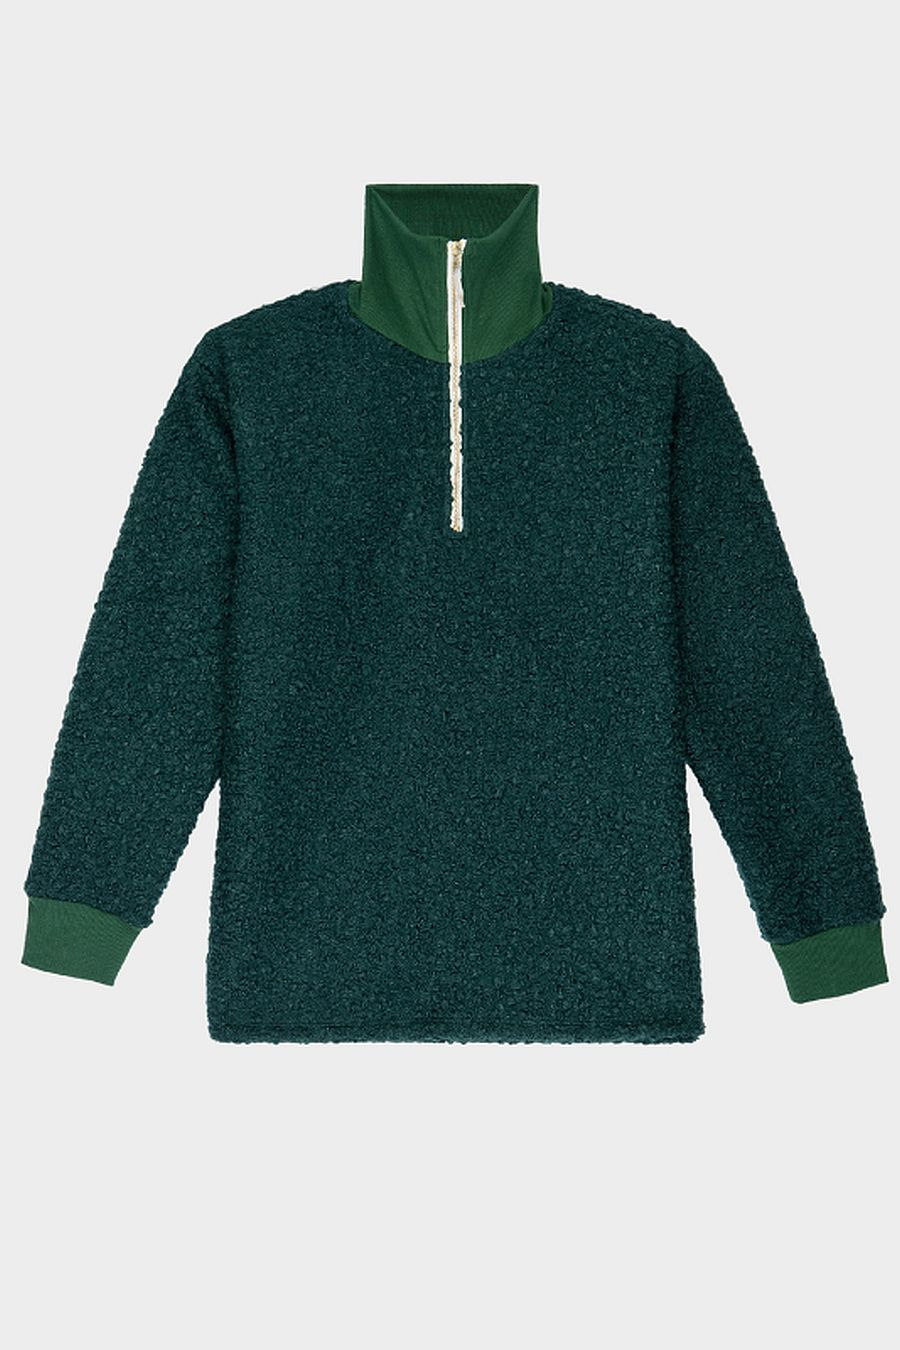 DONNI. Curly 1/2 Zip Pullover - Hunter